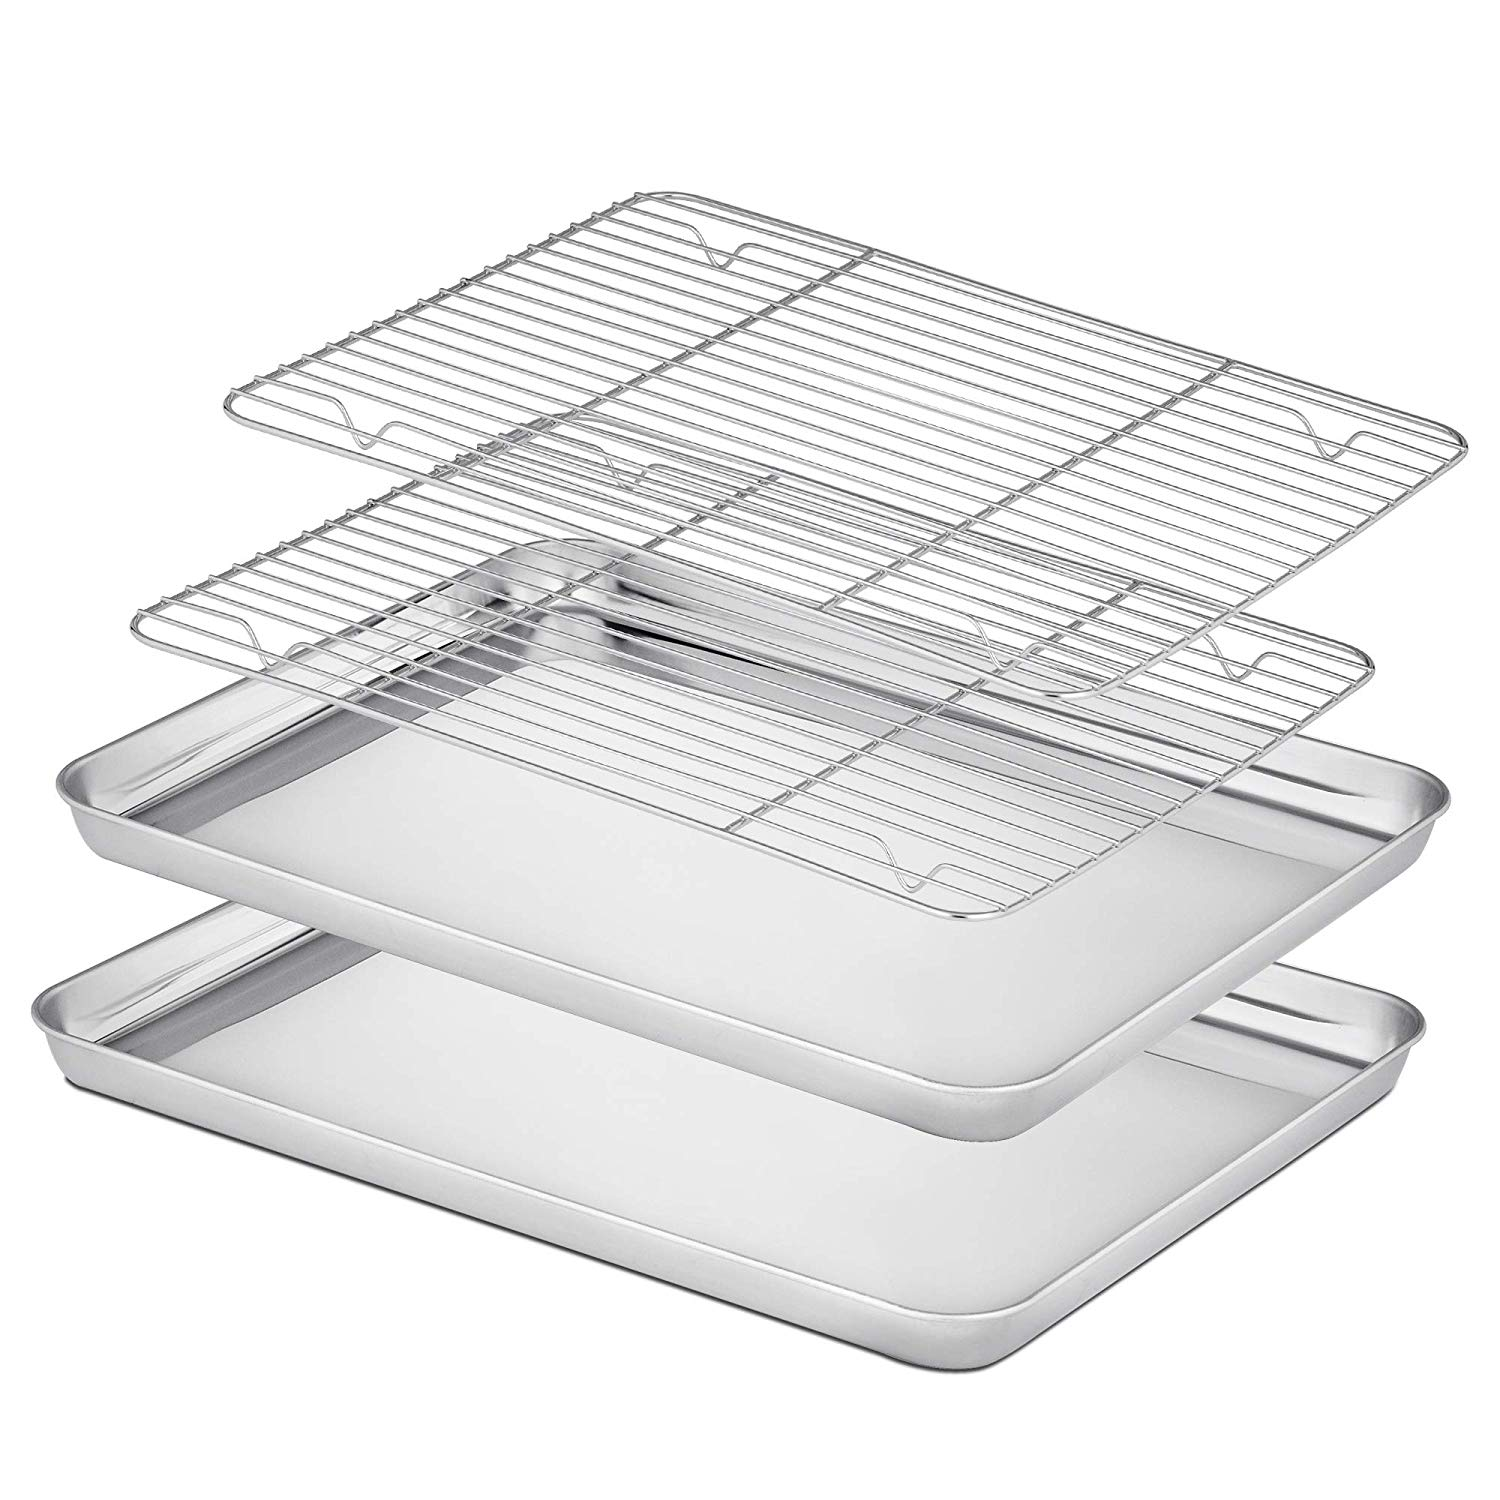 Velaze Baking Tray with Rack (2Pans 2Racks) Stainless Steel Non Toxic Baking Pan Cookie Sheet with Cooling Rack Dishwasher Safe